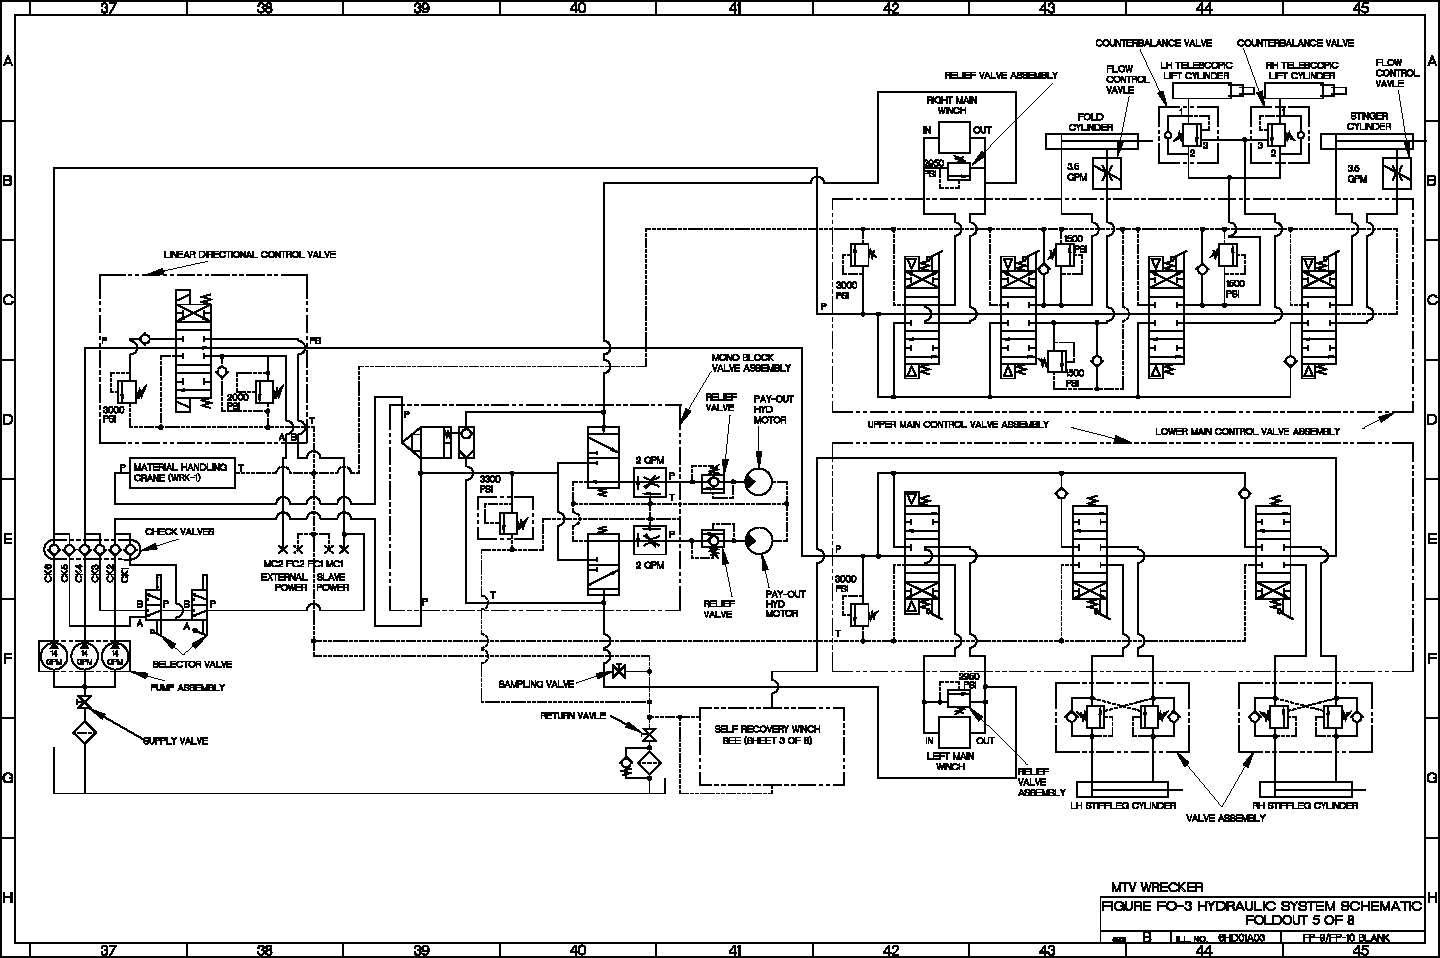 aircraft wiring and schematic diagrams image 10